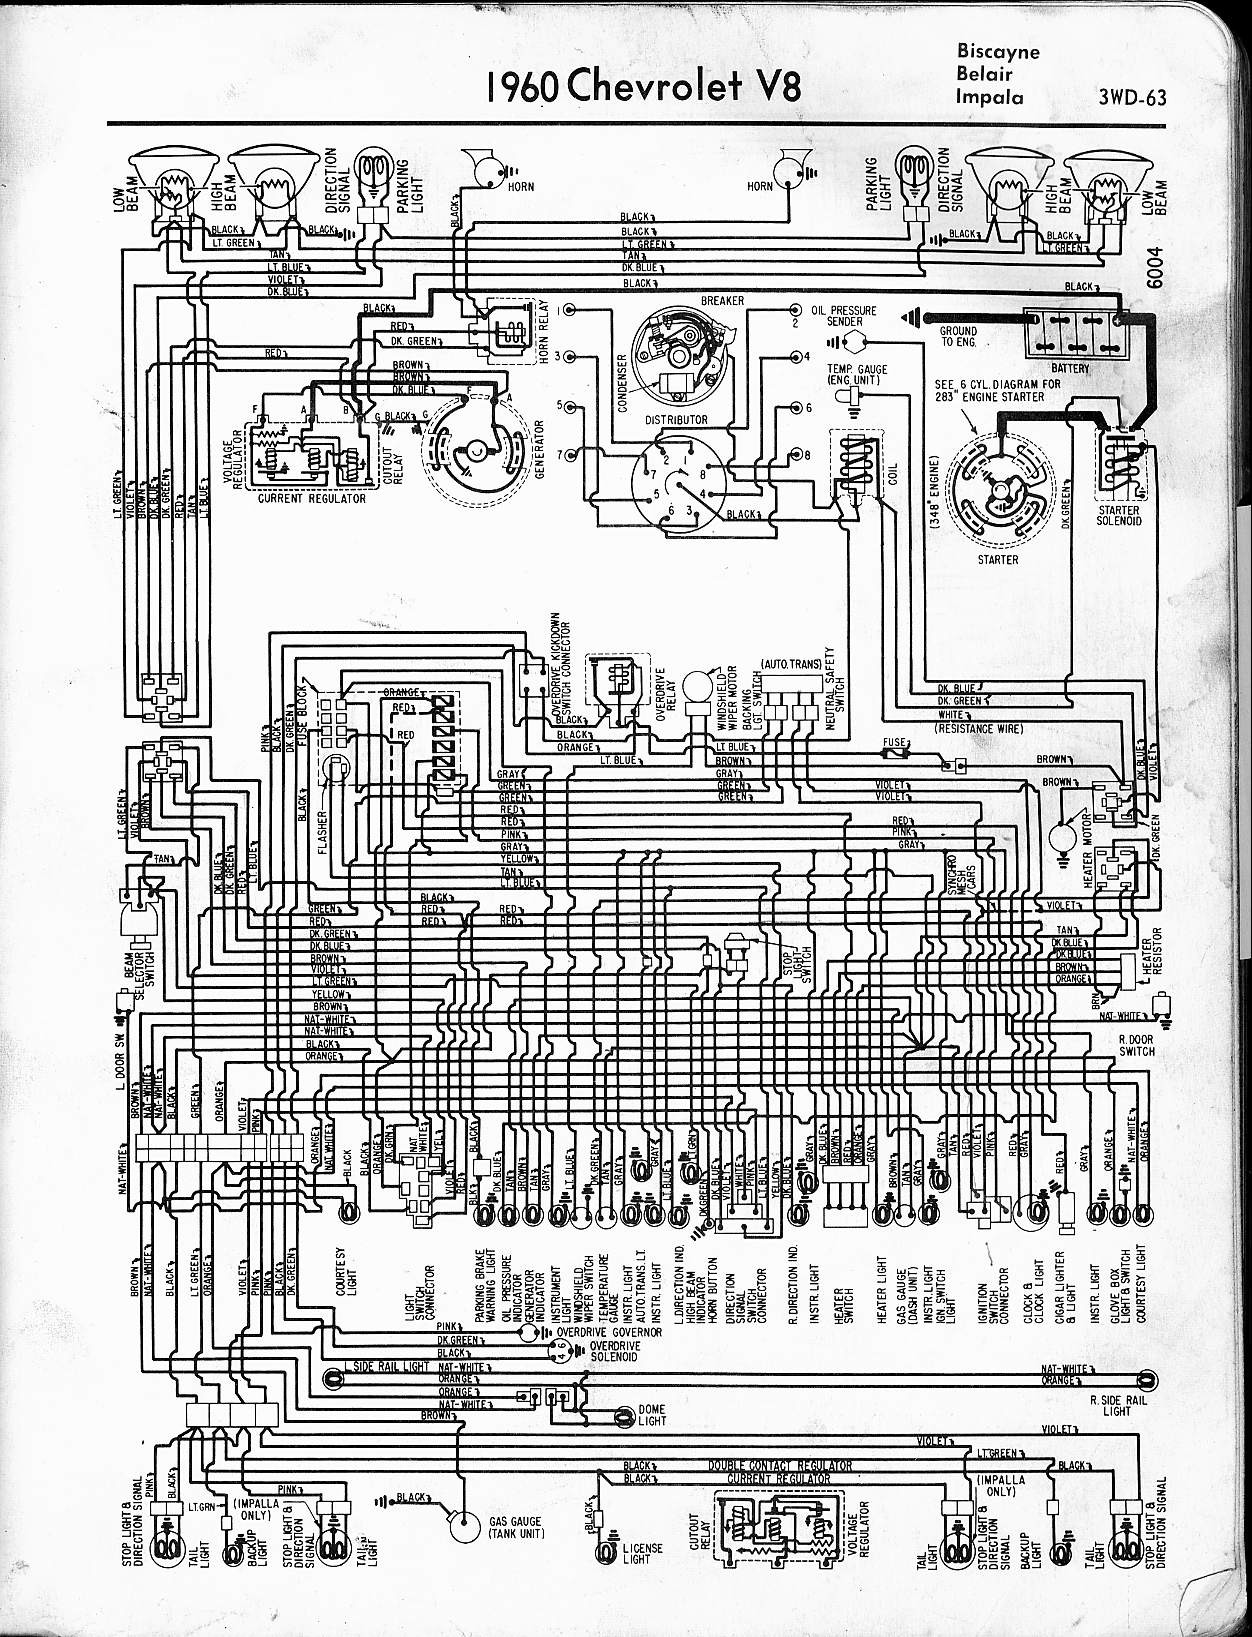 2008 Chevy Impala Wiring Diagram 57 65 Chevy Wiring Diagrams Of 2008 Chevy Impala Wiring Diagram Chevrolet Impala Electrical System 2000 Chevrolet Impala Caroldoey